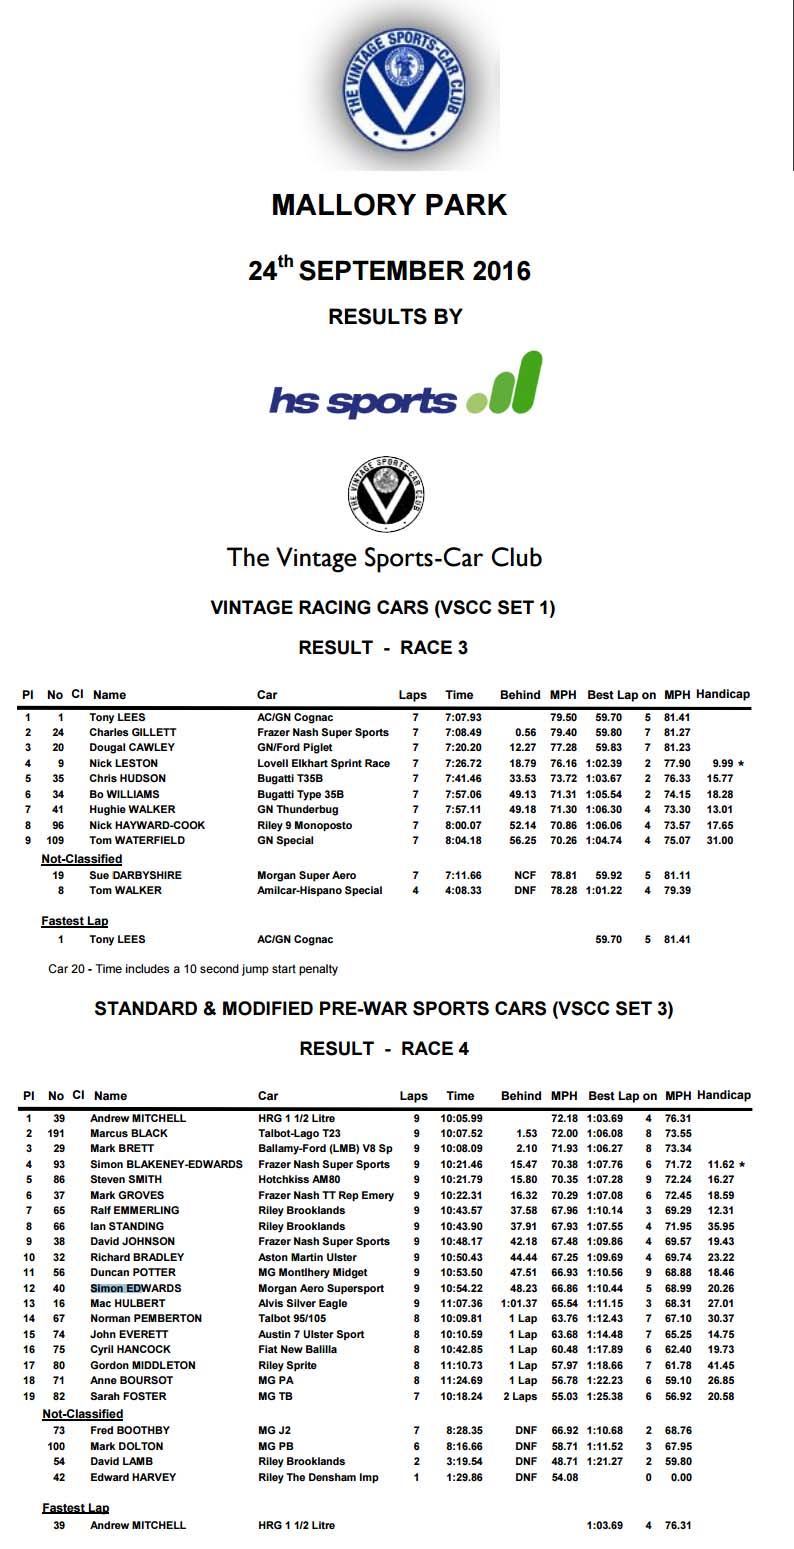 vscc-mallory-24th-september-2016-results